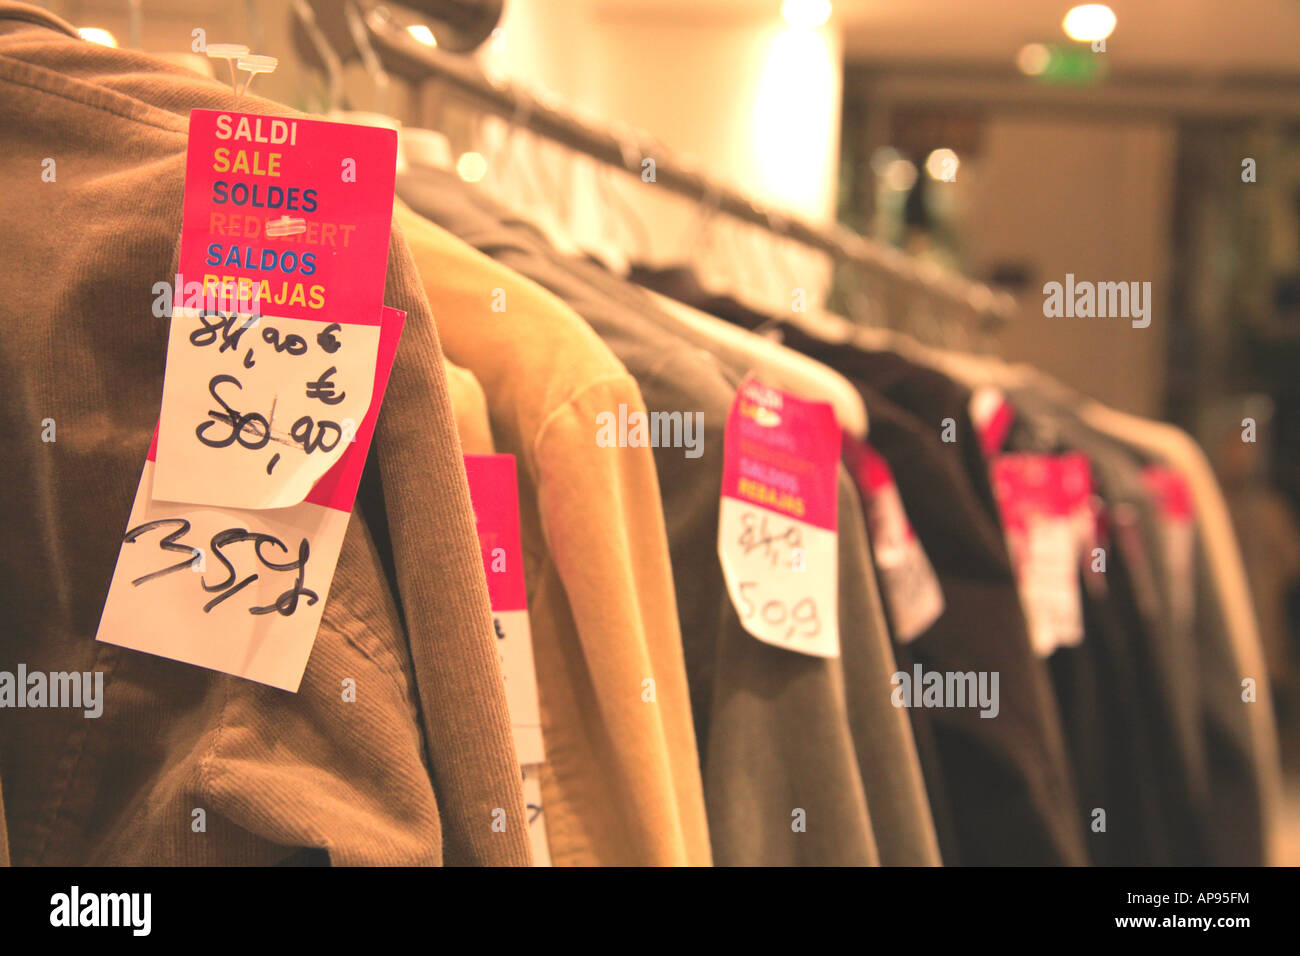 Store Tags: Clothes Sale Shop Euro Price Tags Stock Photo, Royalty